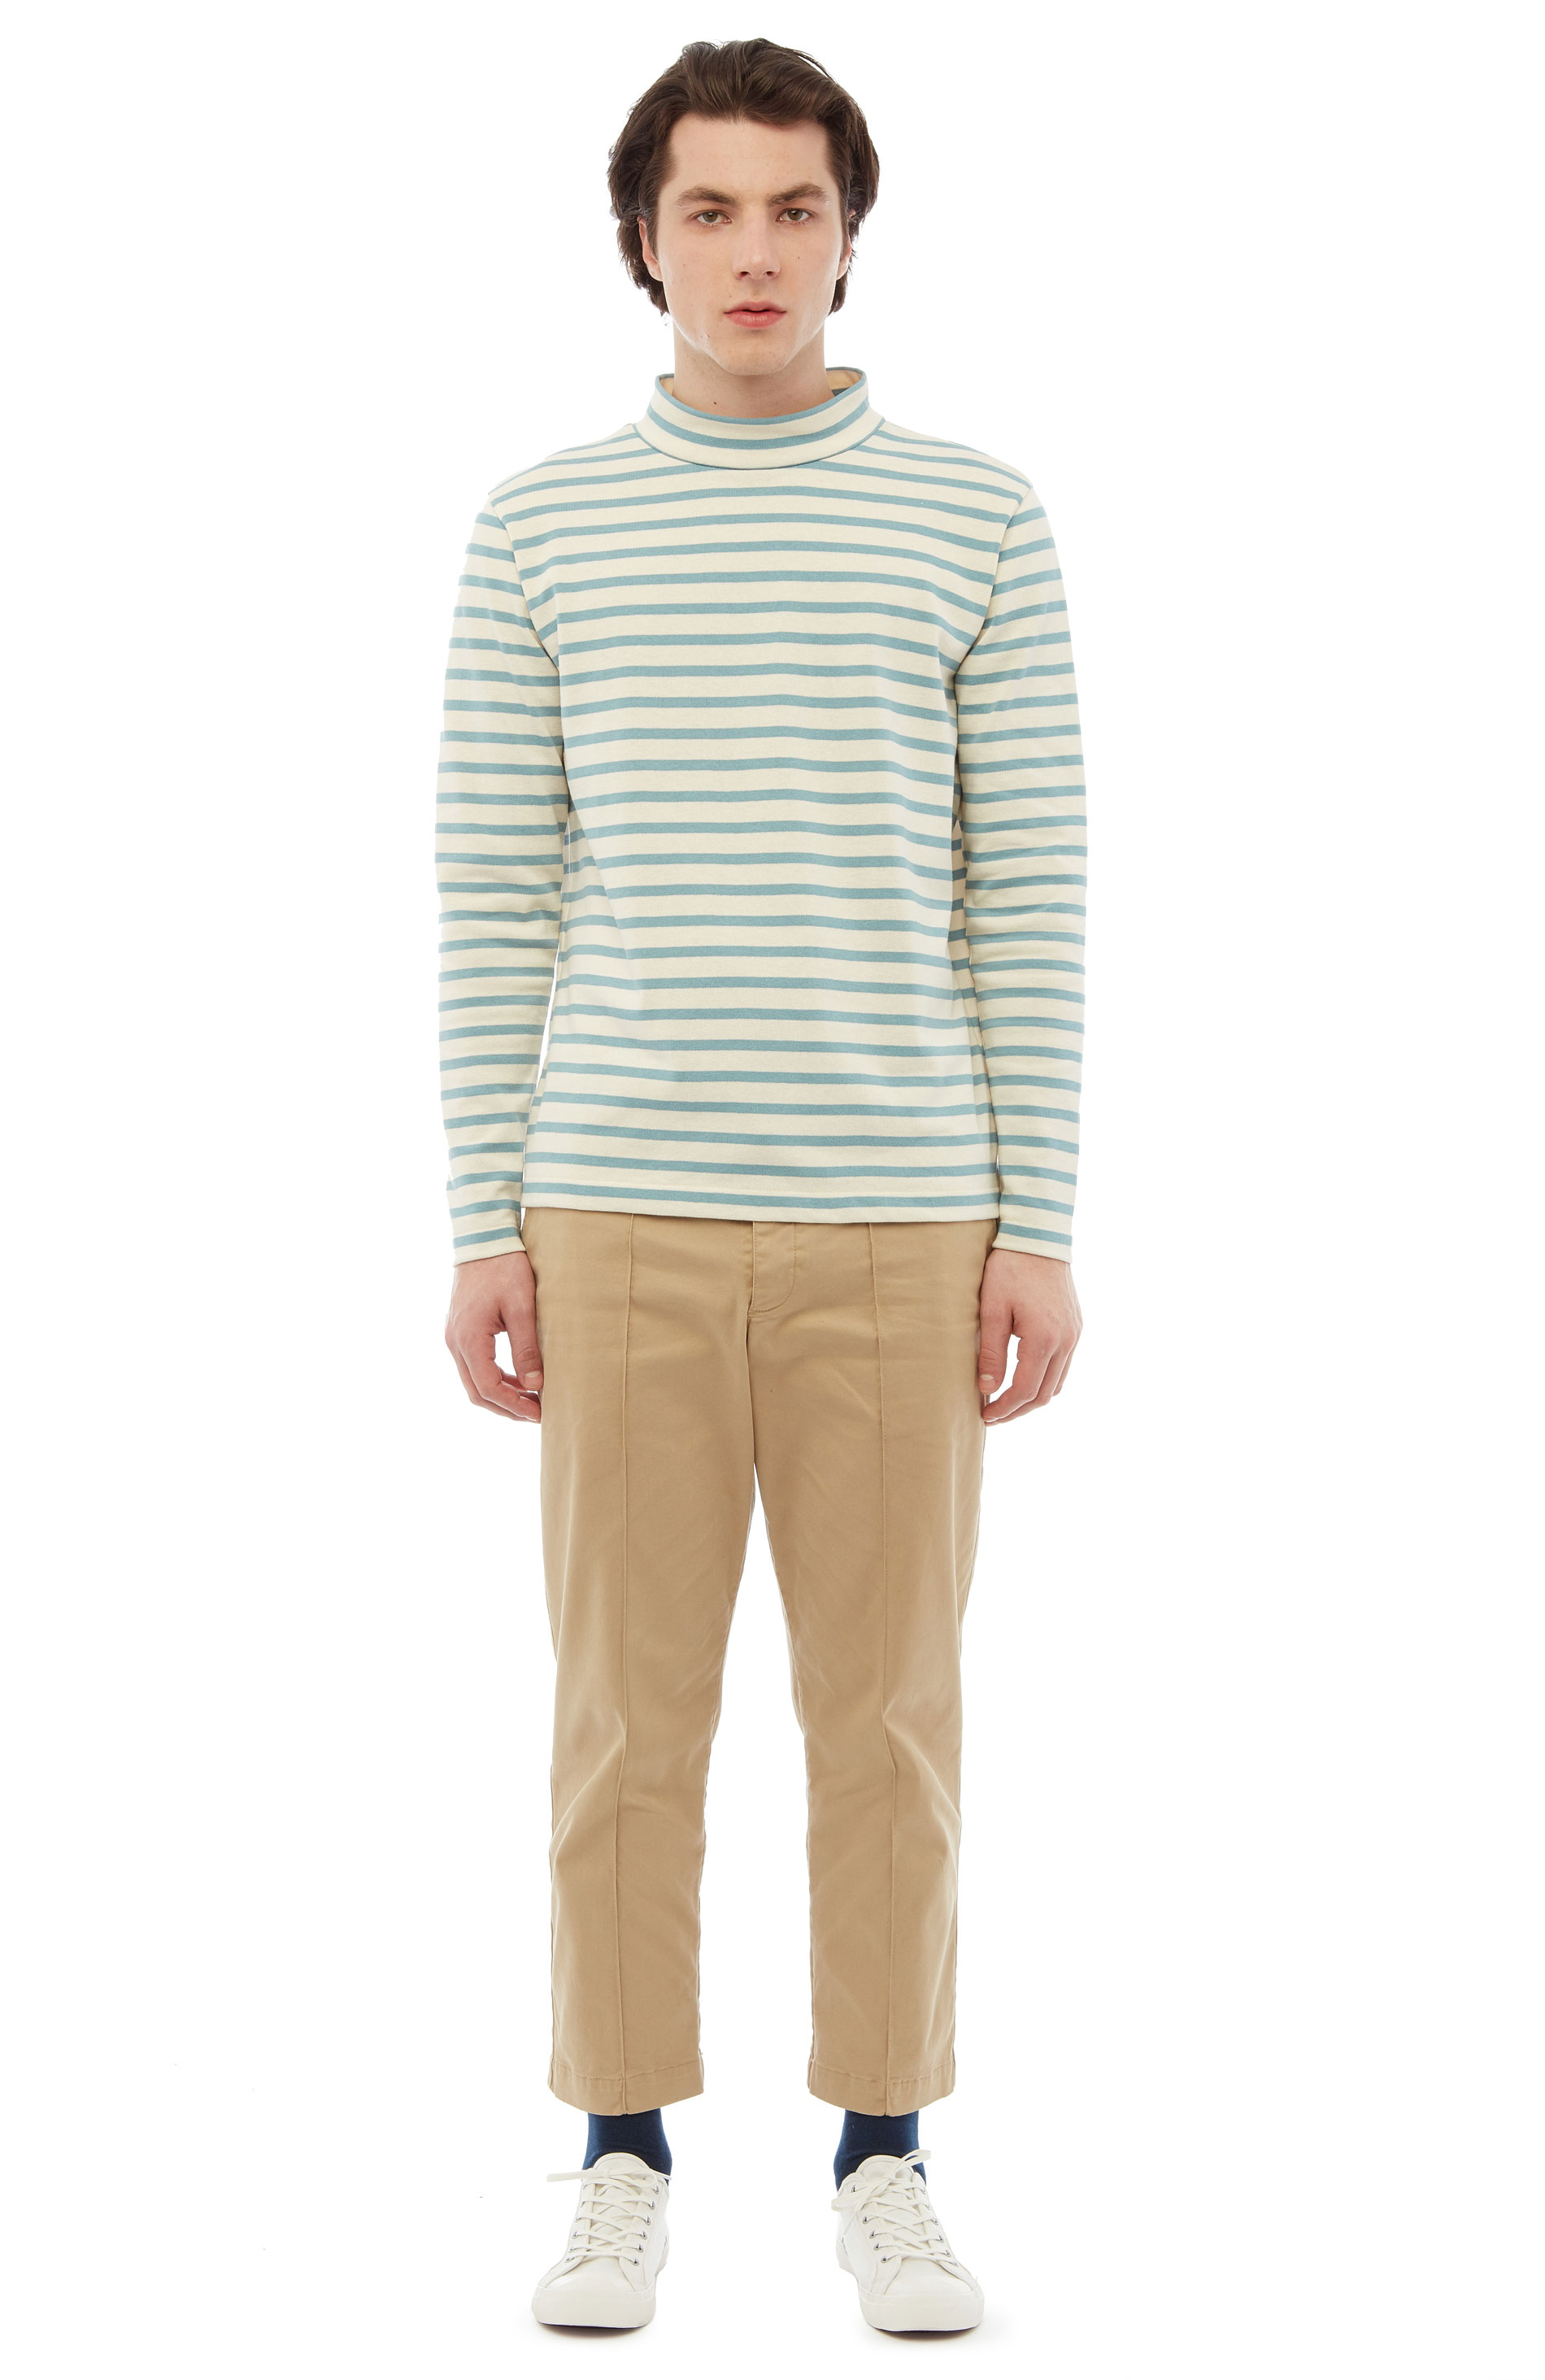 YMC Chino Turtleneck (ecru/blue)